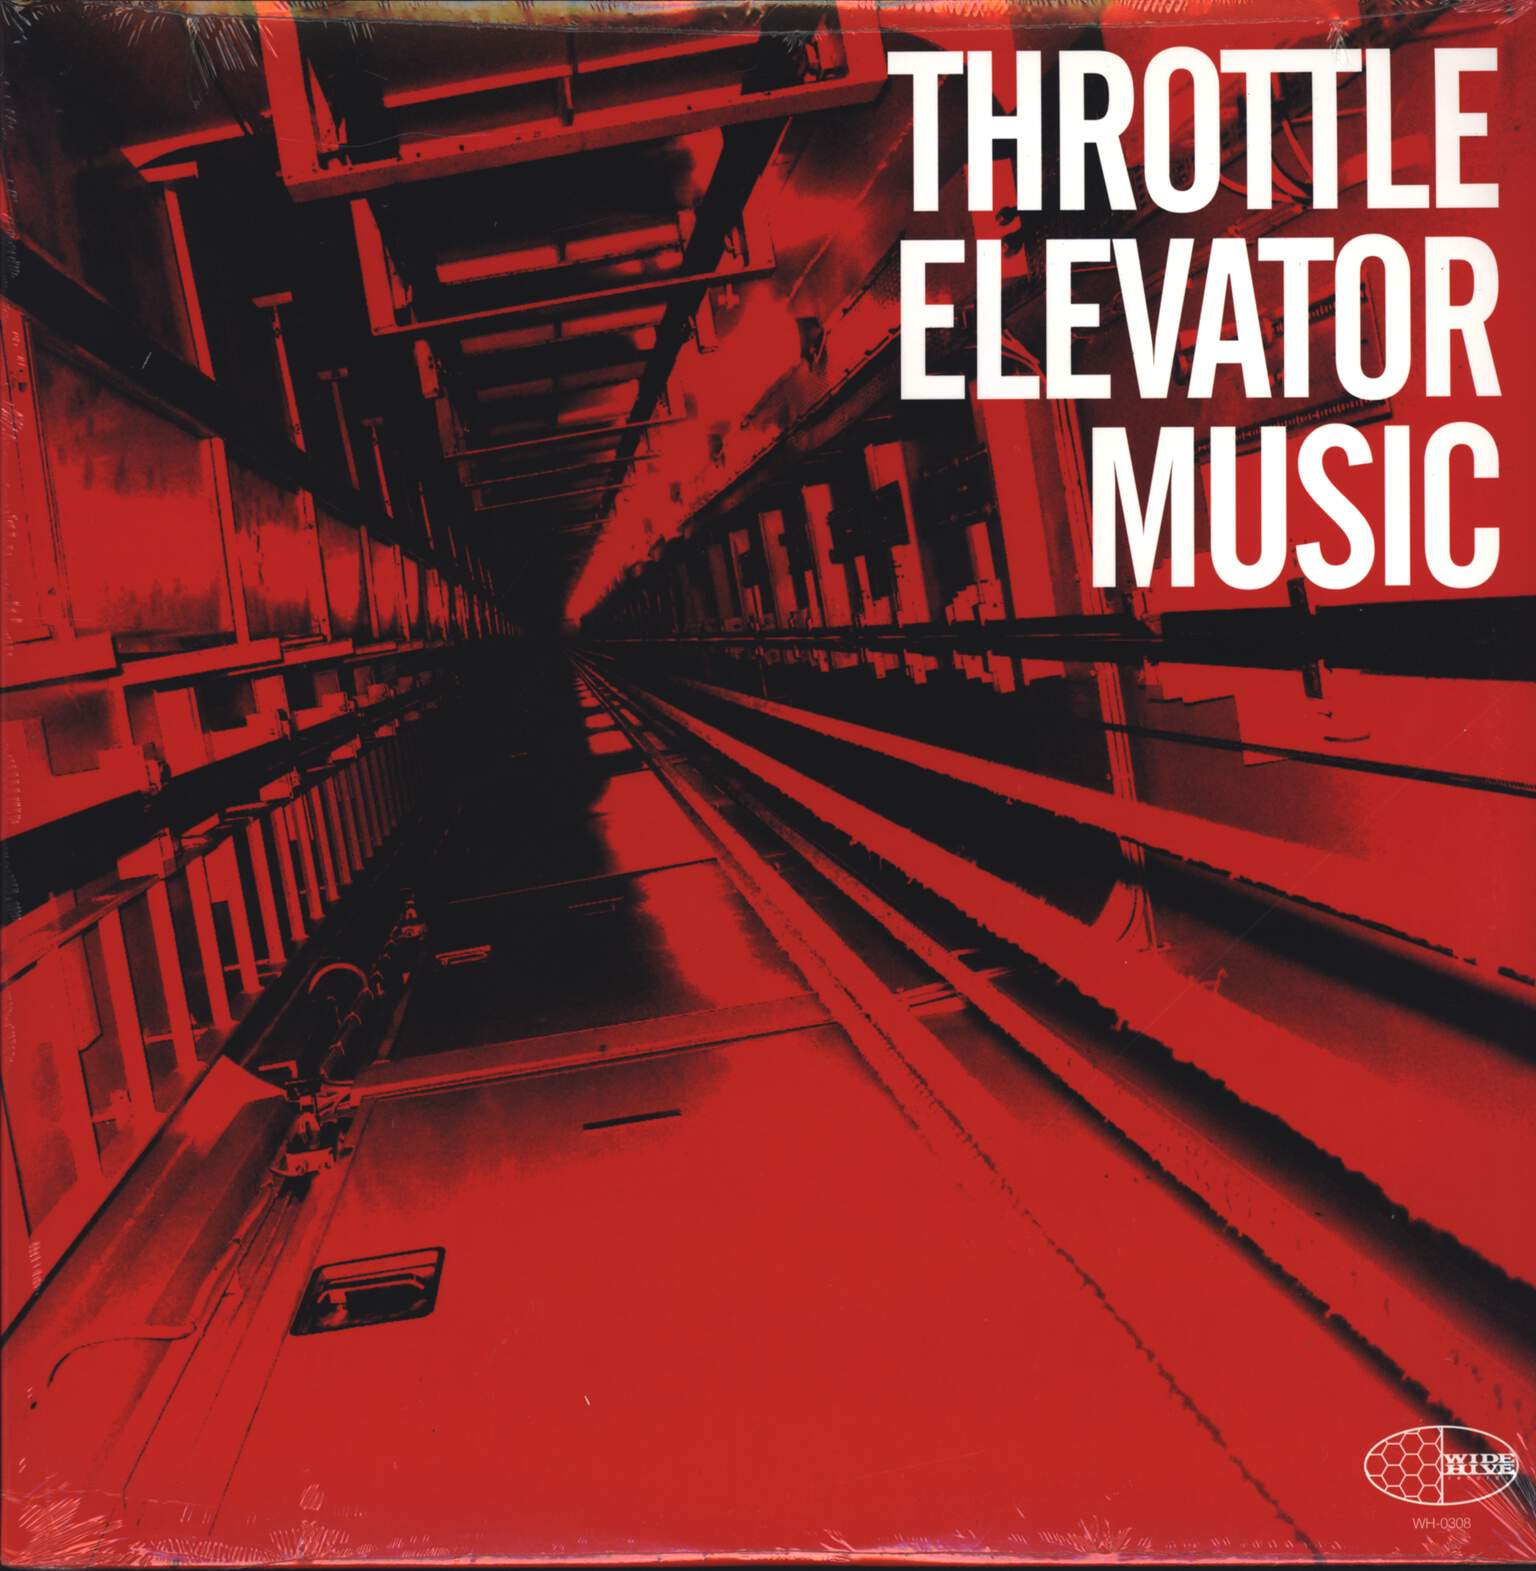 "Throttle Elevator Music: Throttle Elevator Music, 12"" Maxi Single (Vinyl)"